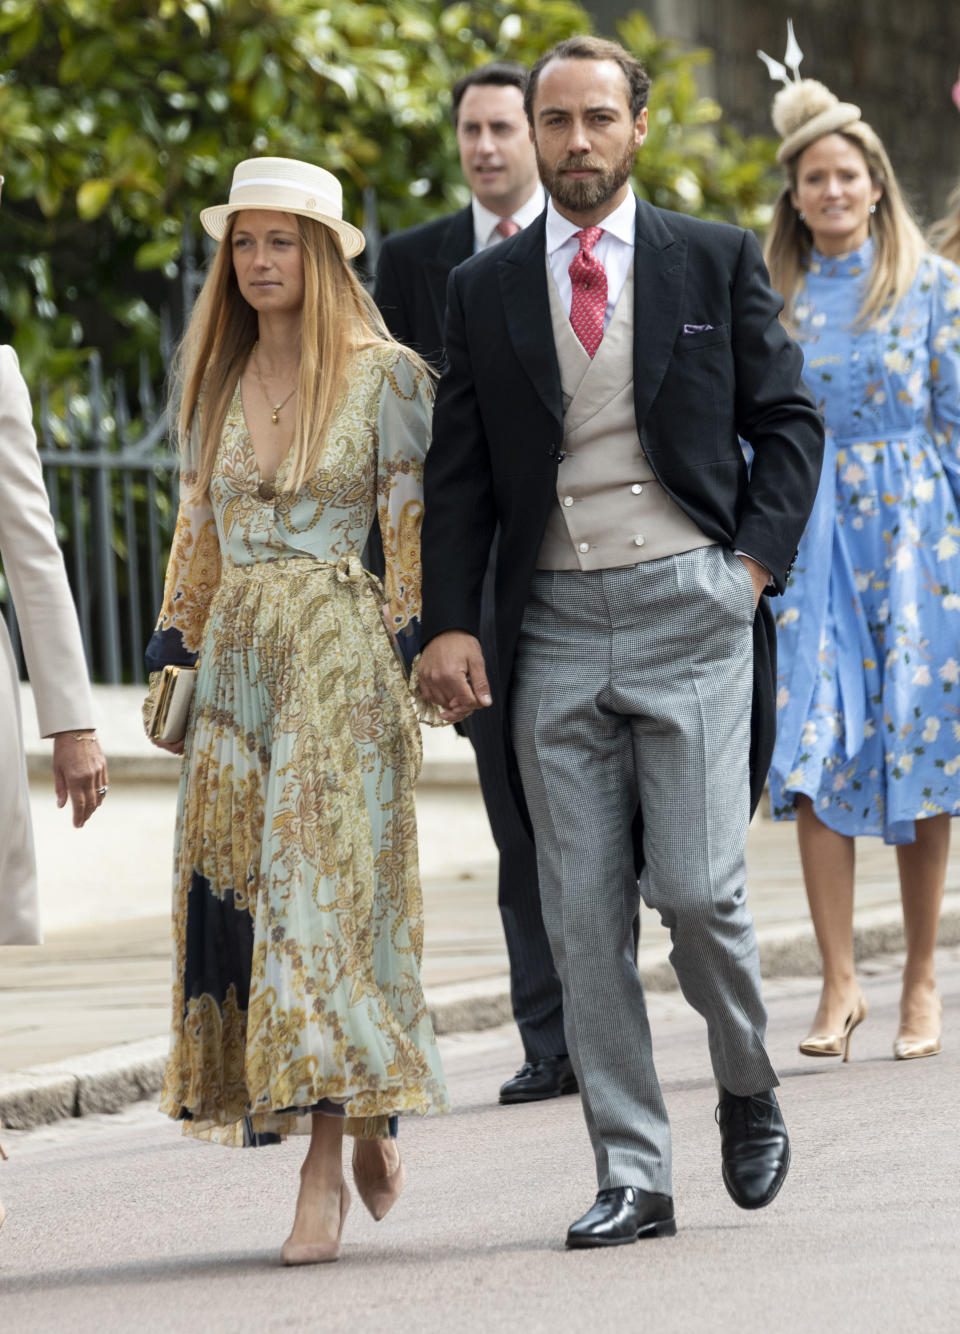 A photo of James Middleton and Alizée Thevenet at the wedding of Lady Gabriella Windsor and Mr Thomas Kingston at St George's Chapel, Windsor Castle on May 18, 2019 in Windsor, England.